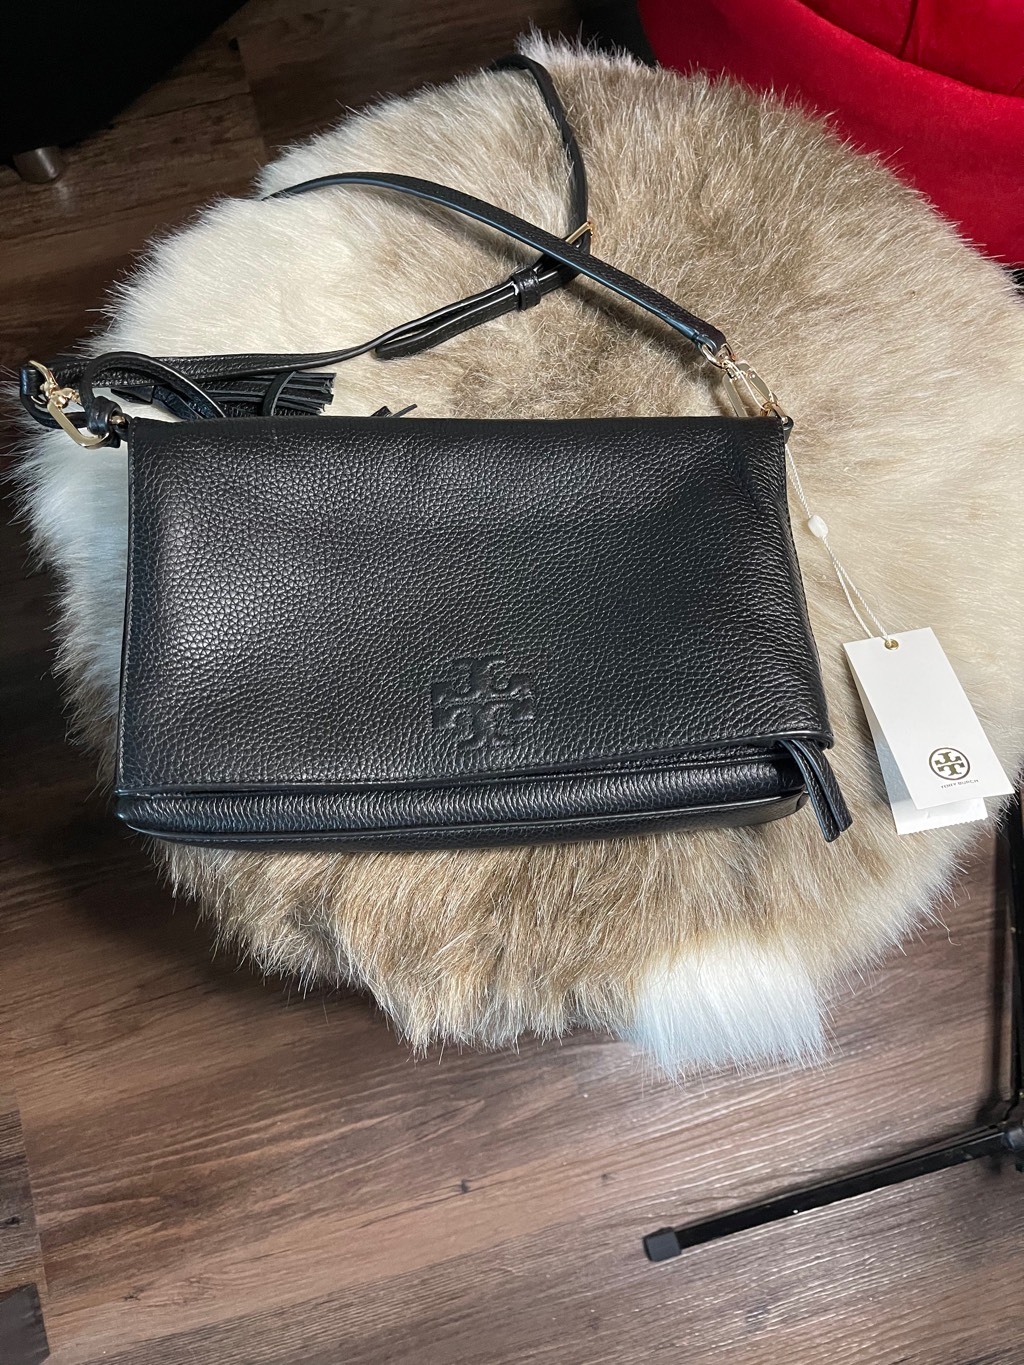 Tory Burch Thea Bag - NWT Other1